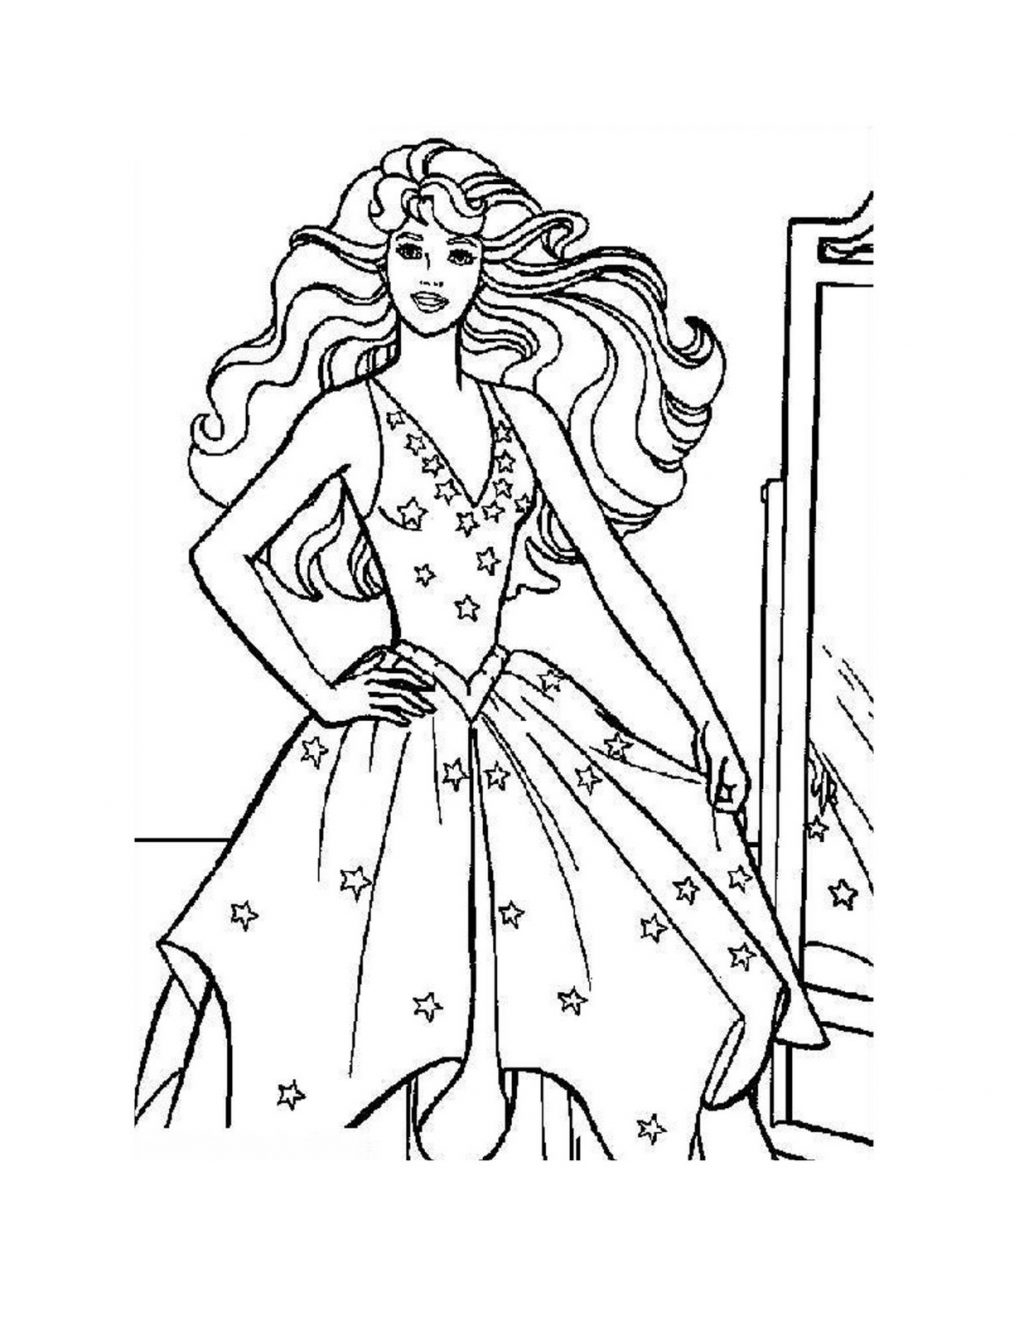 Coloring Pages ~ Disney Princess Free Coloring Pagesable Elsa Merida - Free Printable Princess Coloring Pages